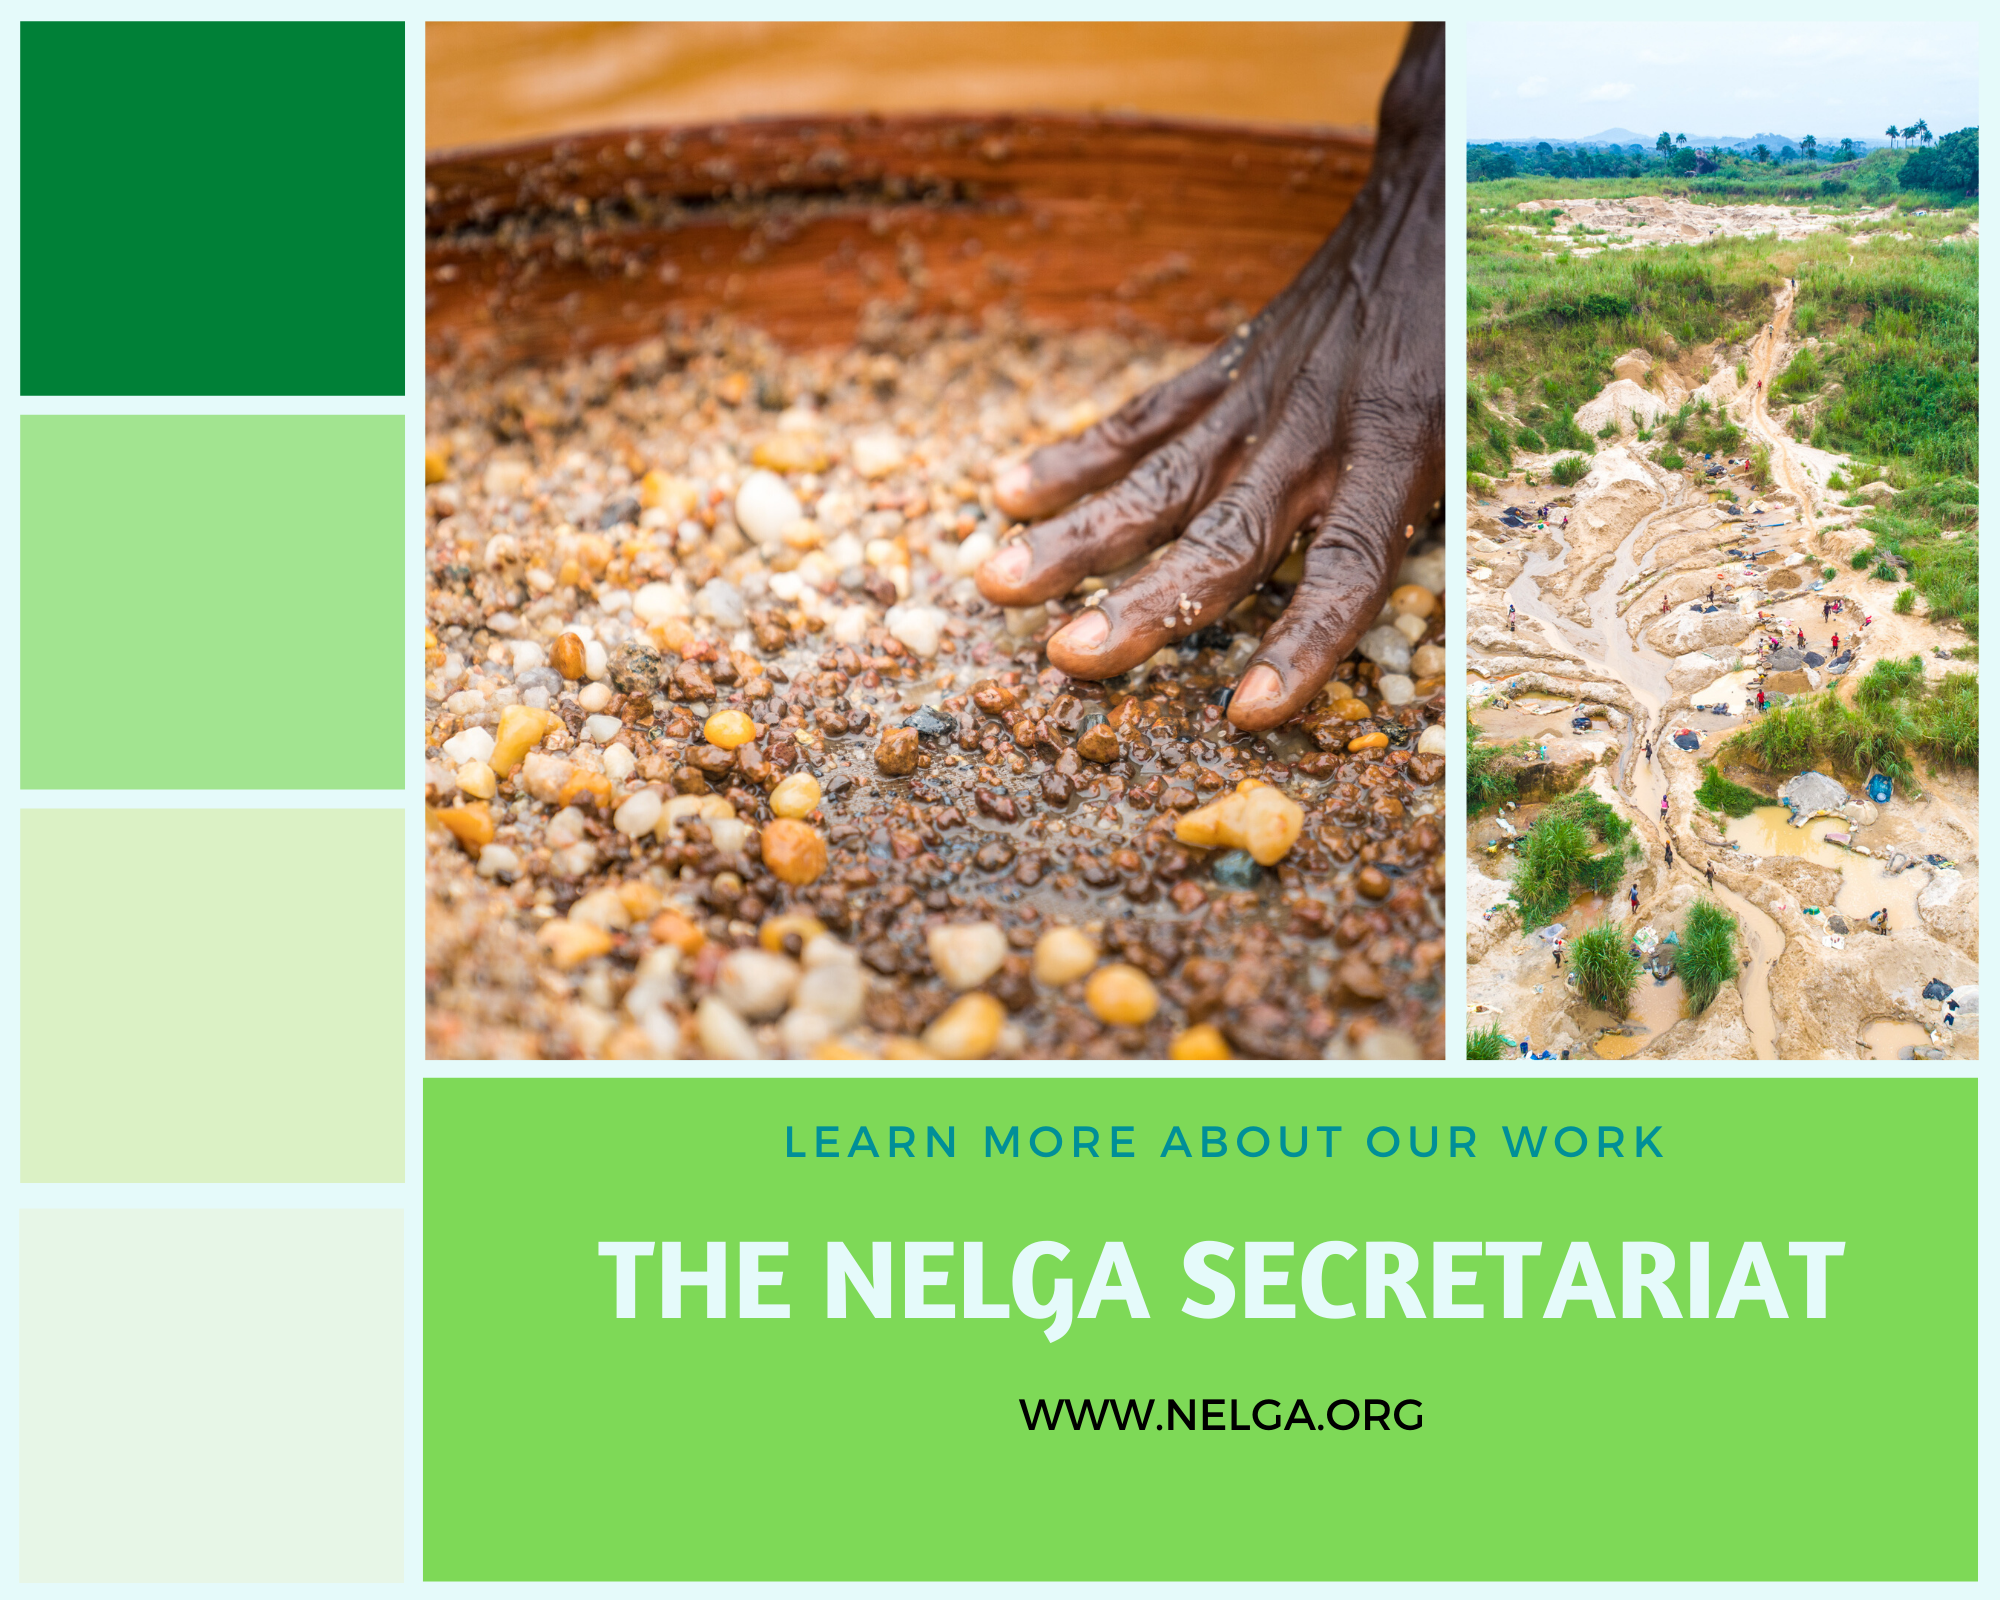 The Network of Excellence on Land Governance in Africa Launches its Continental Secretariat in Ethiopia